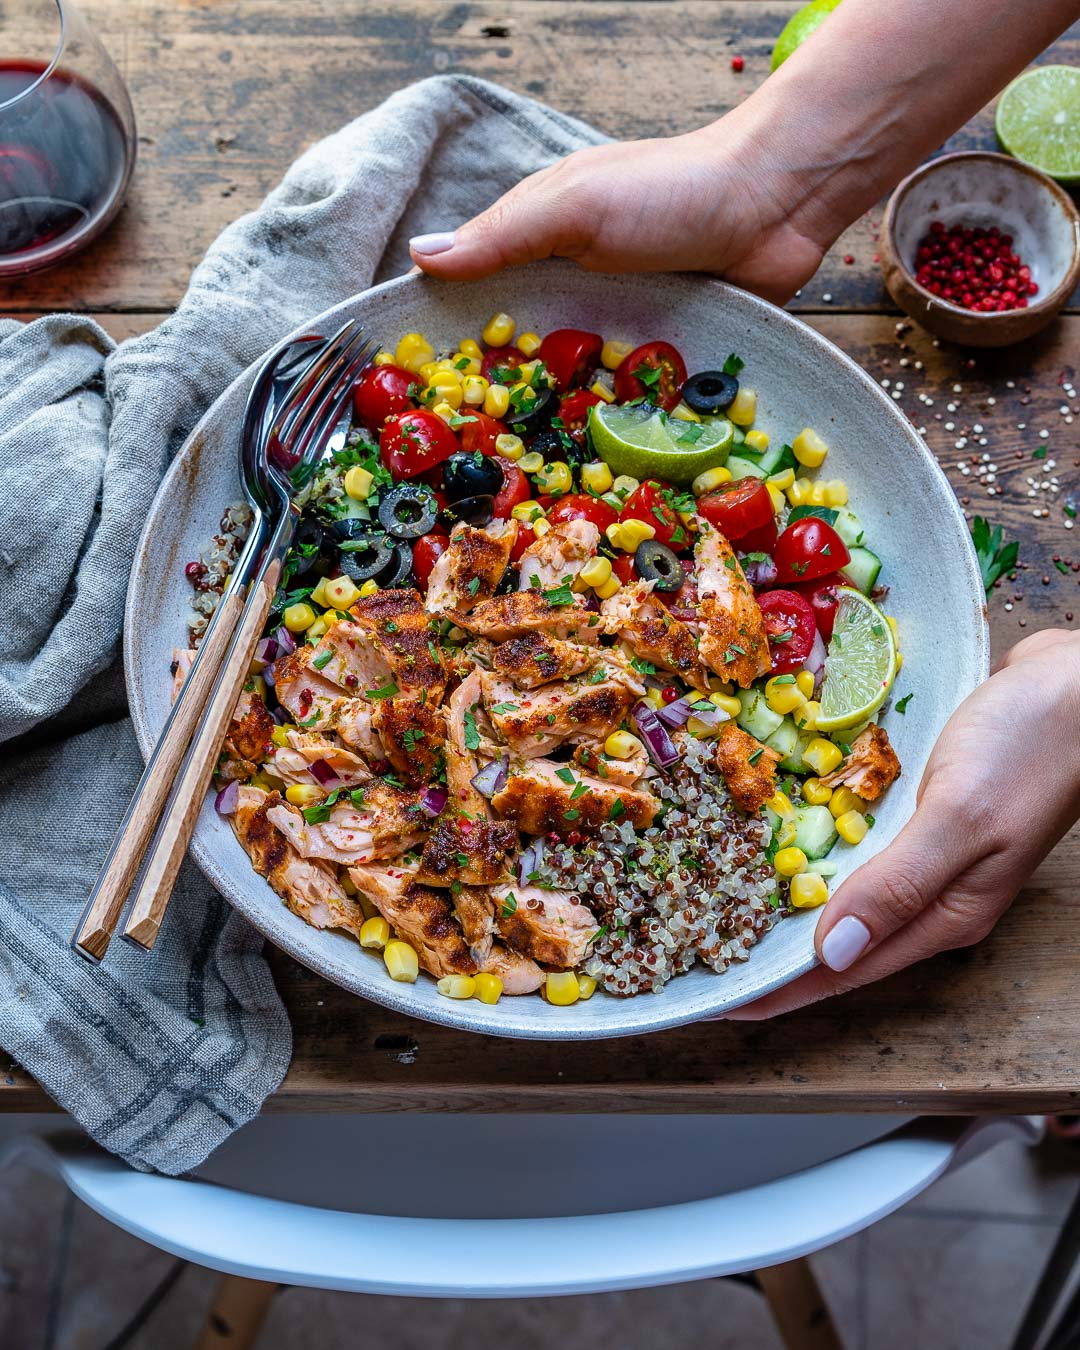 Healthy Grilled Salmon Bowl With Vegetables and Quinoa-10